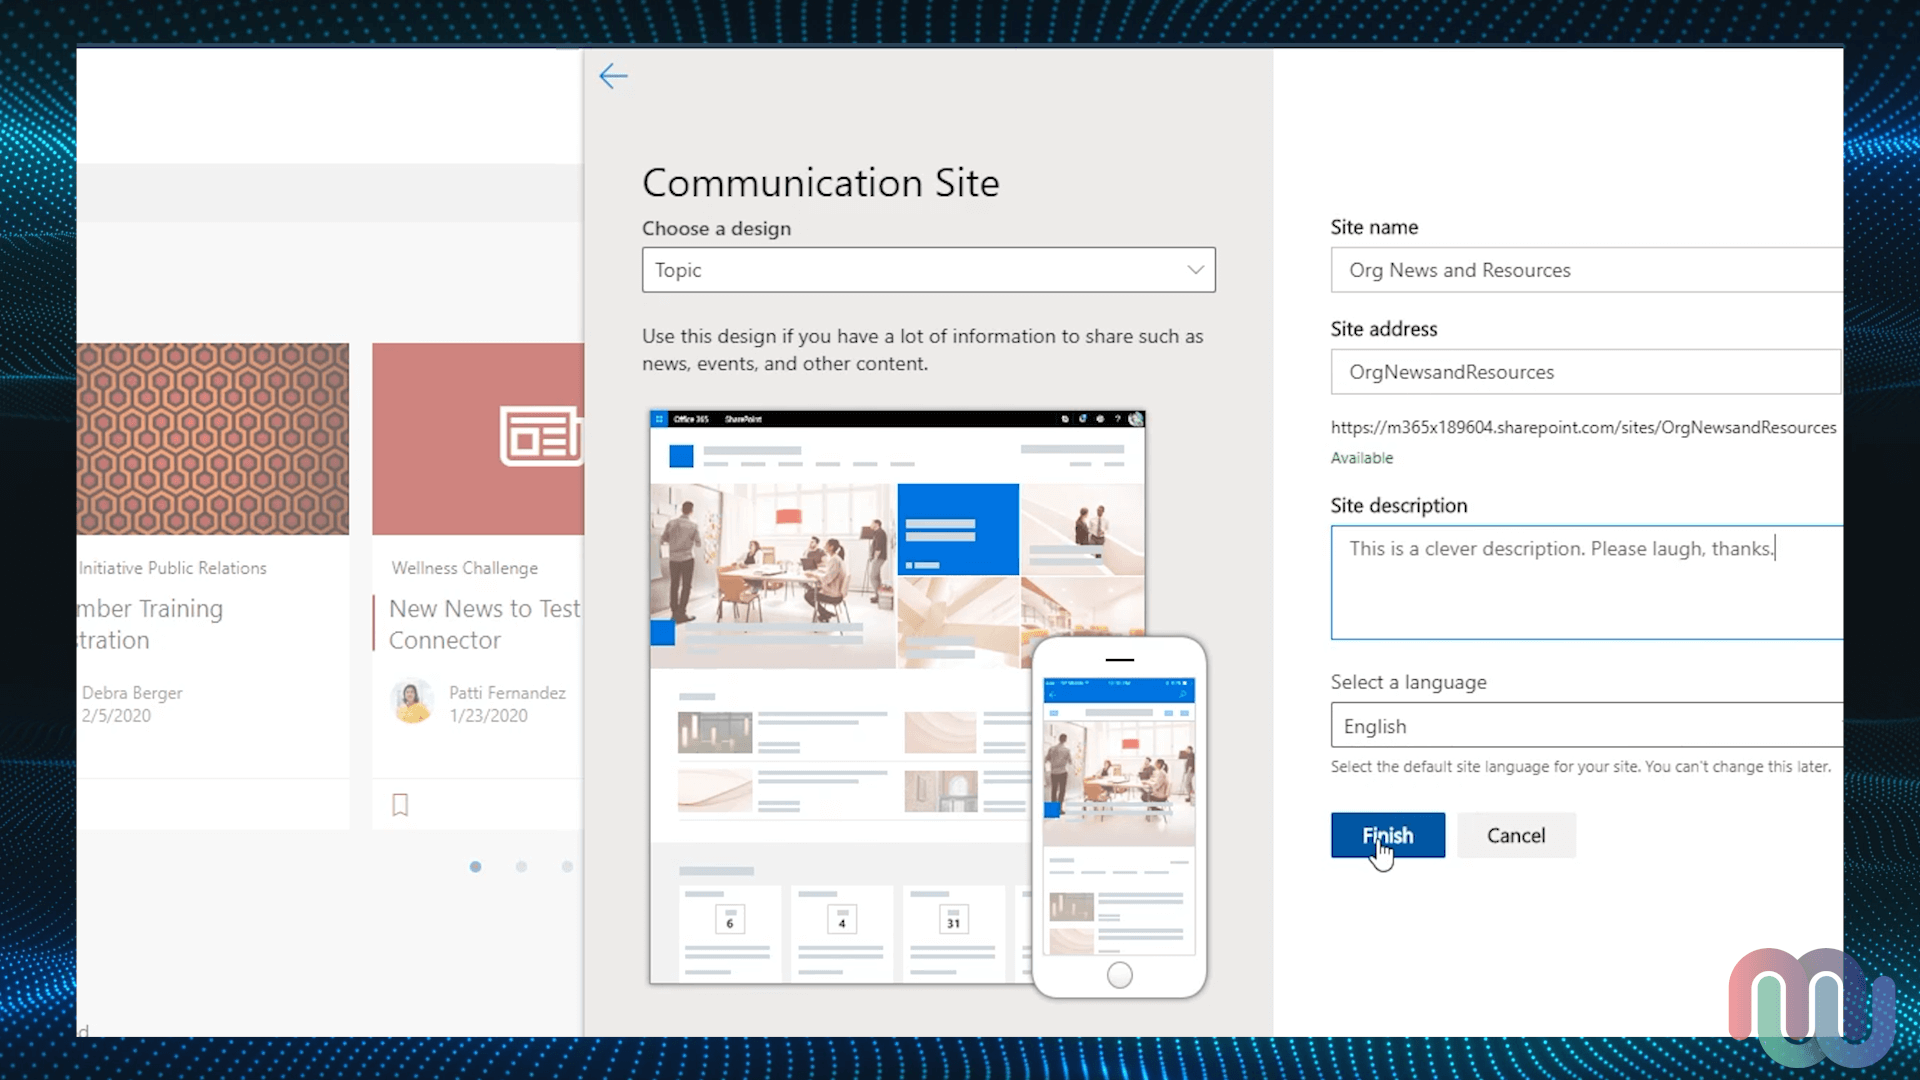 SharePoint Home - Communication Site template